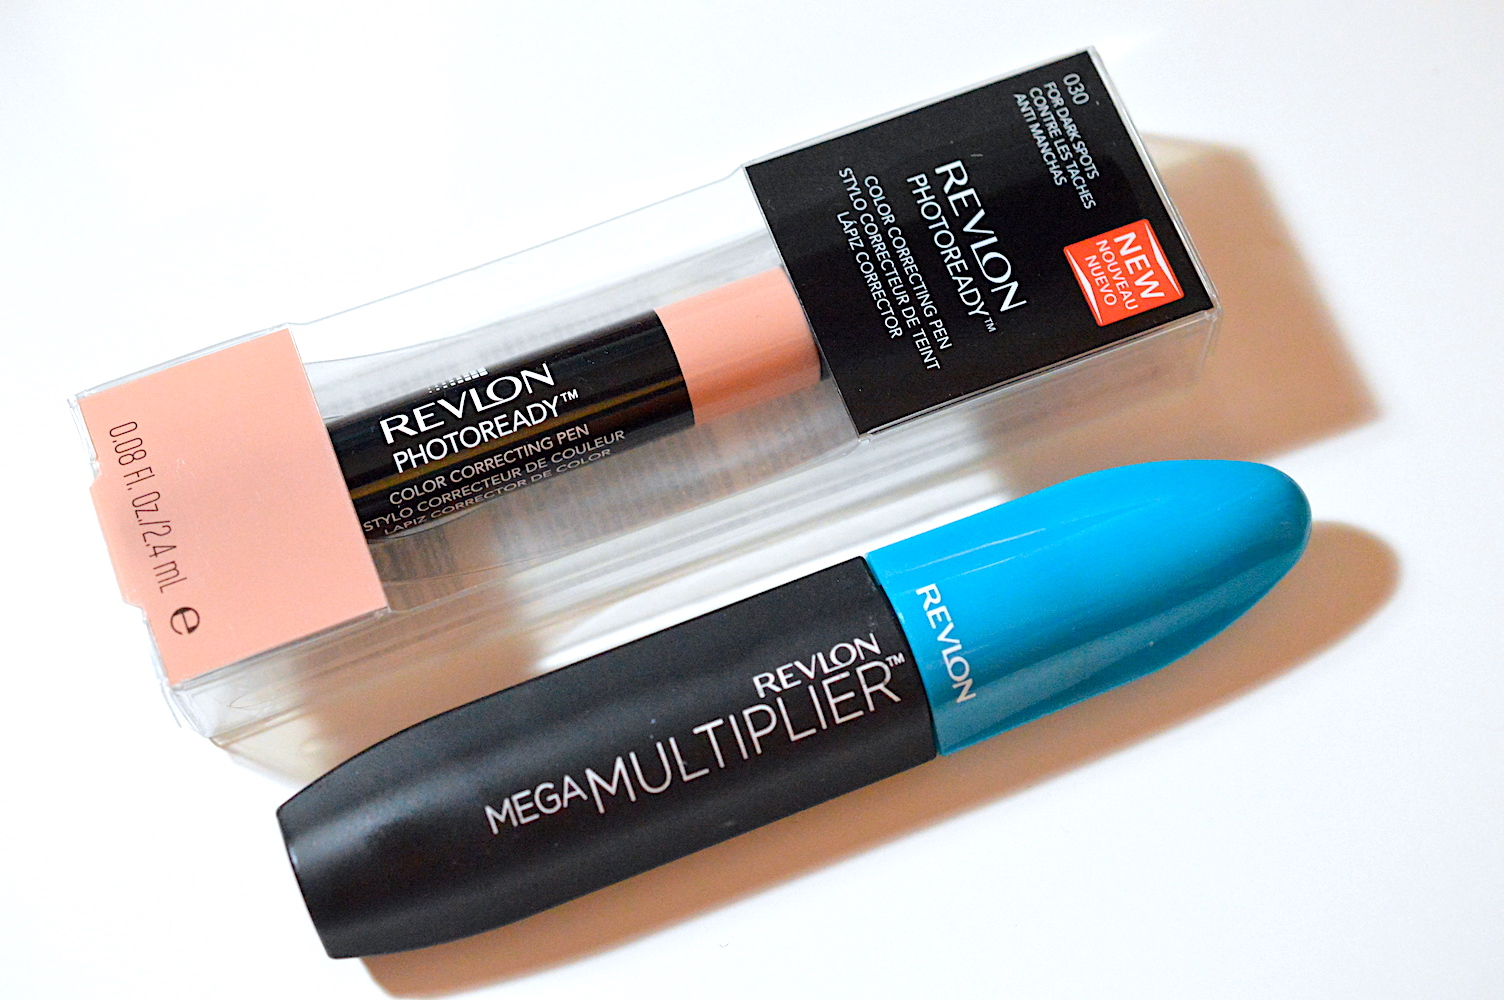 Revlon Color Correcting Pen